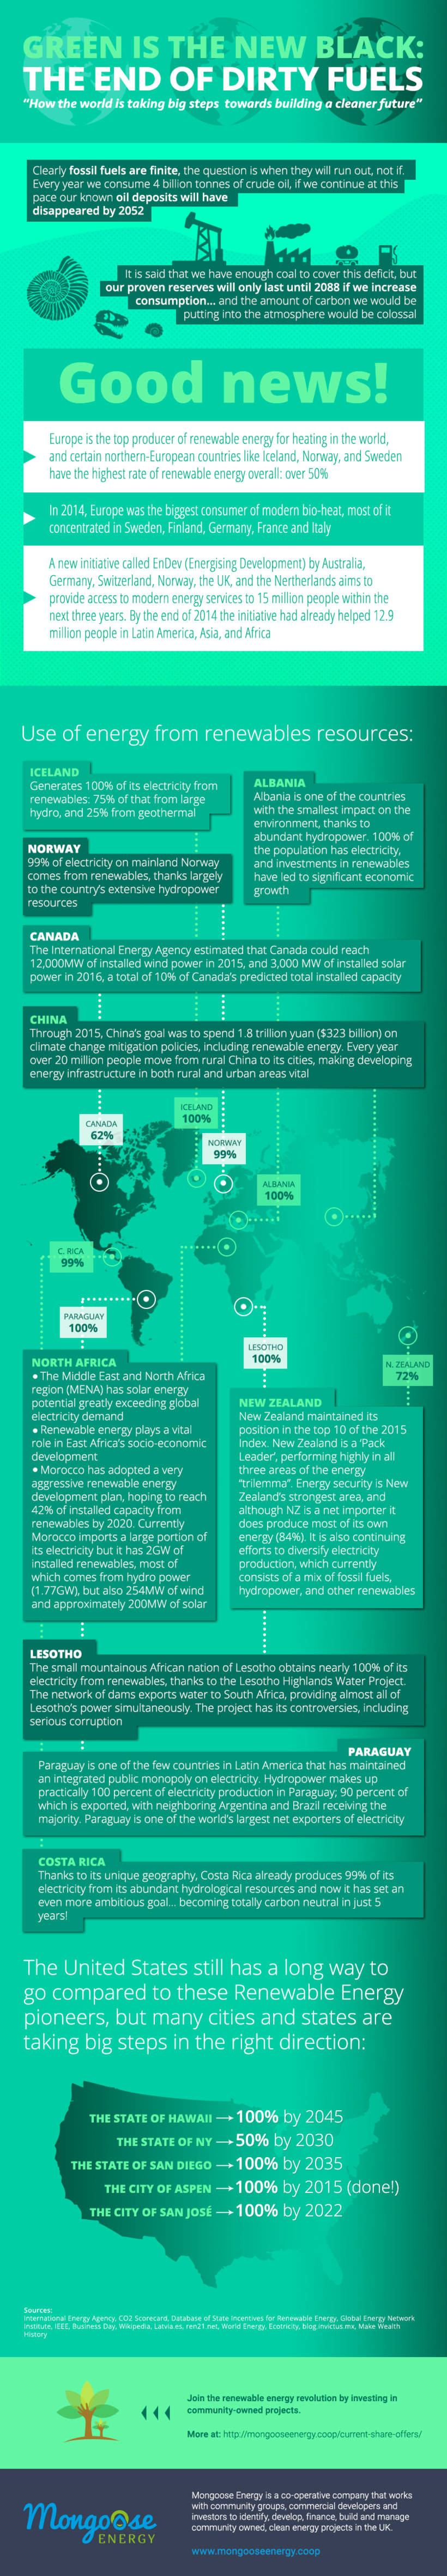 """Diseño de infografía: """"GREEN IS THE NEW BLACK: THE END OF DIRTY FUELS""""  0"""